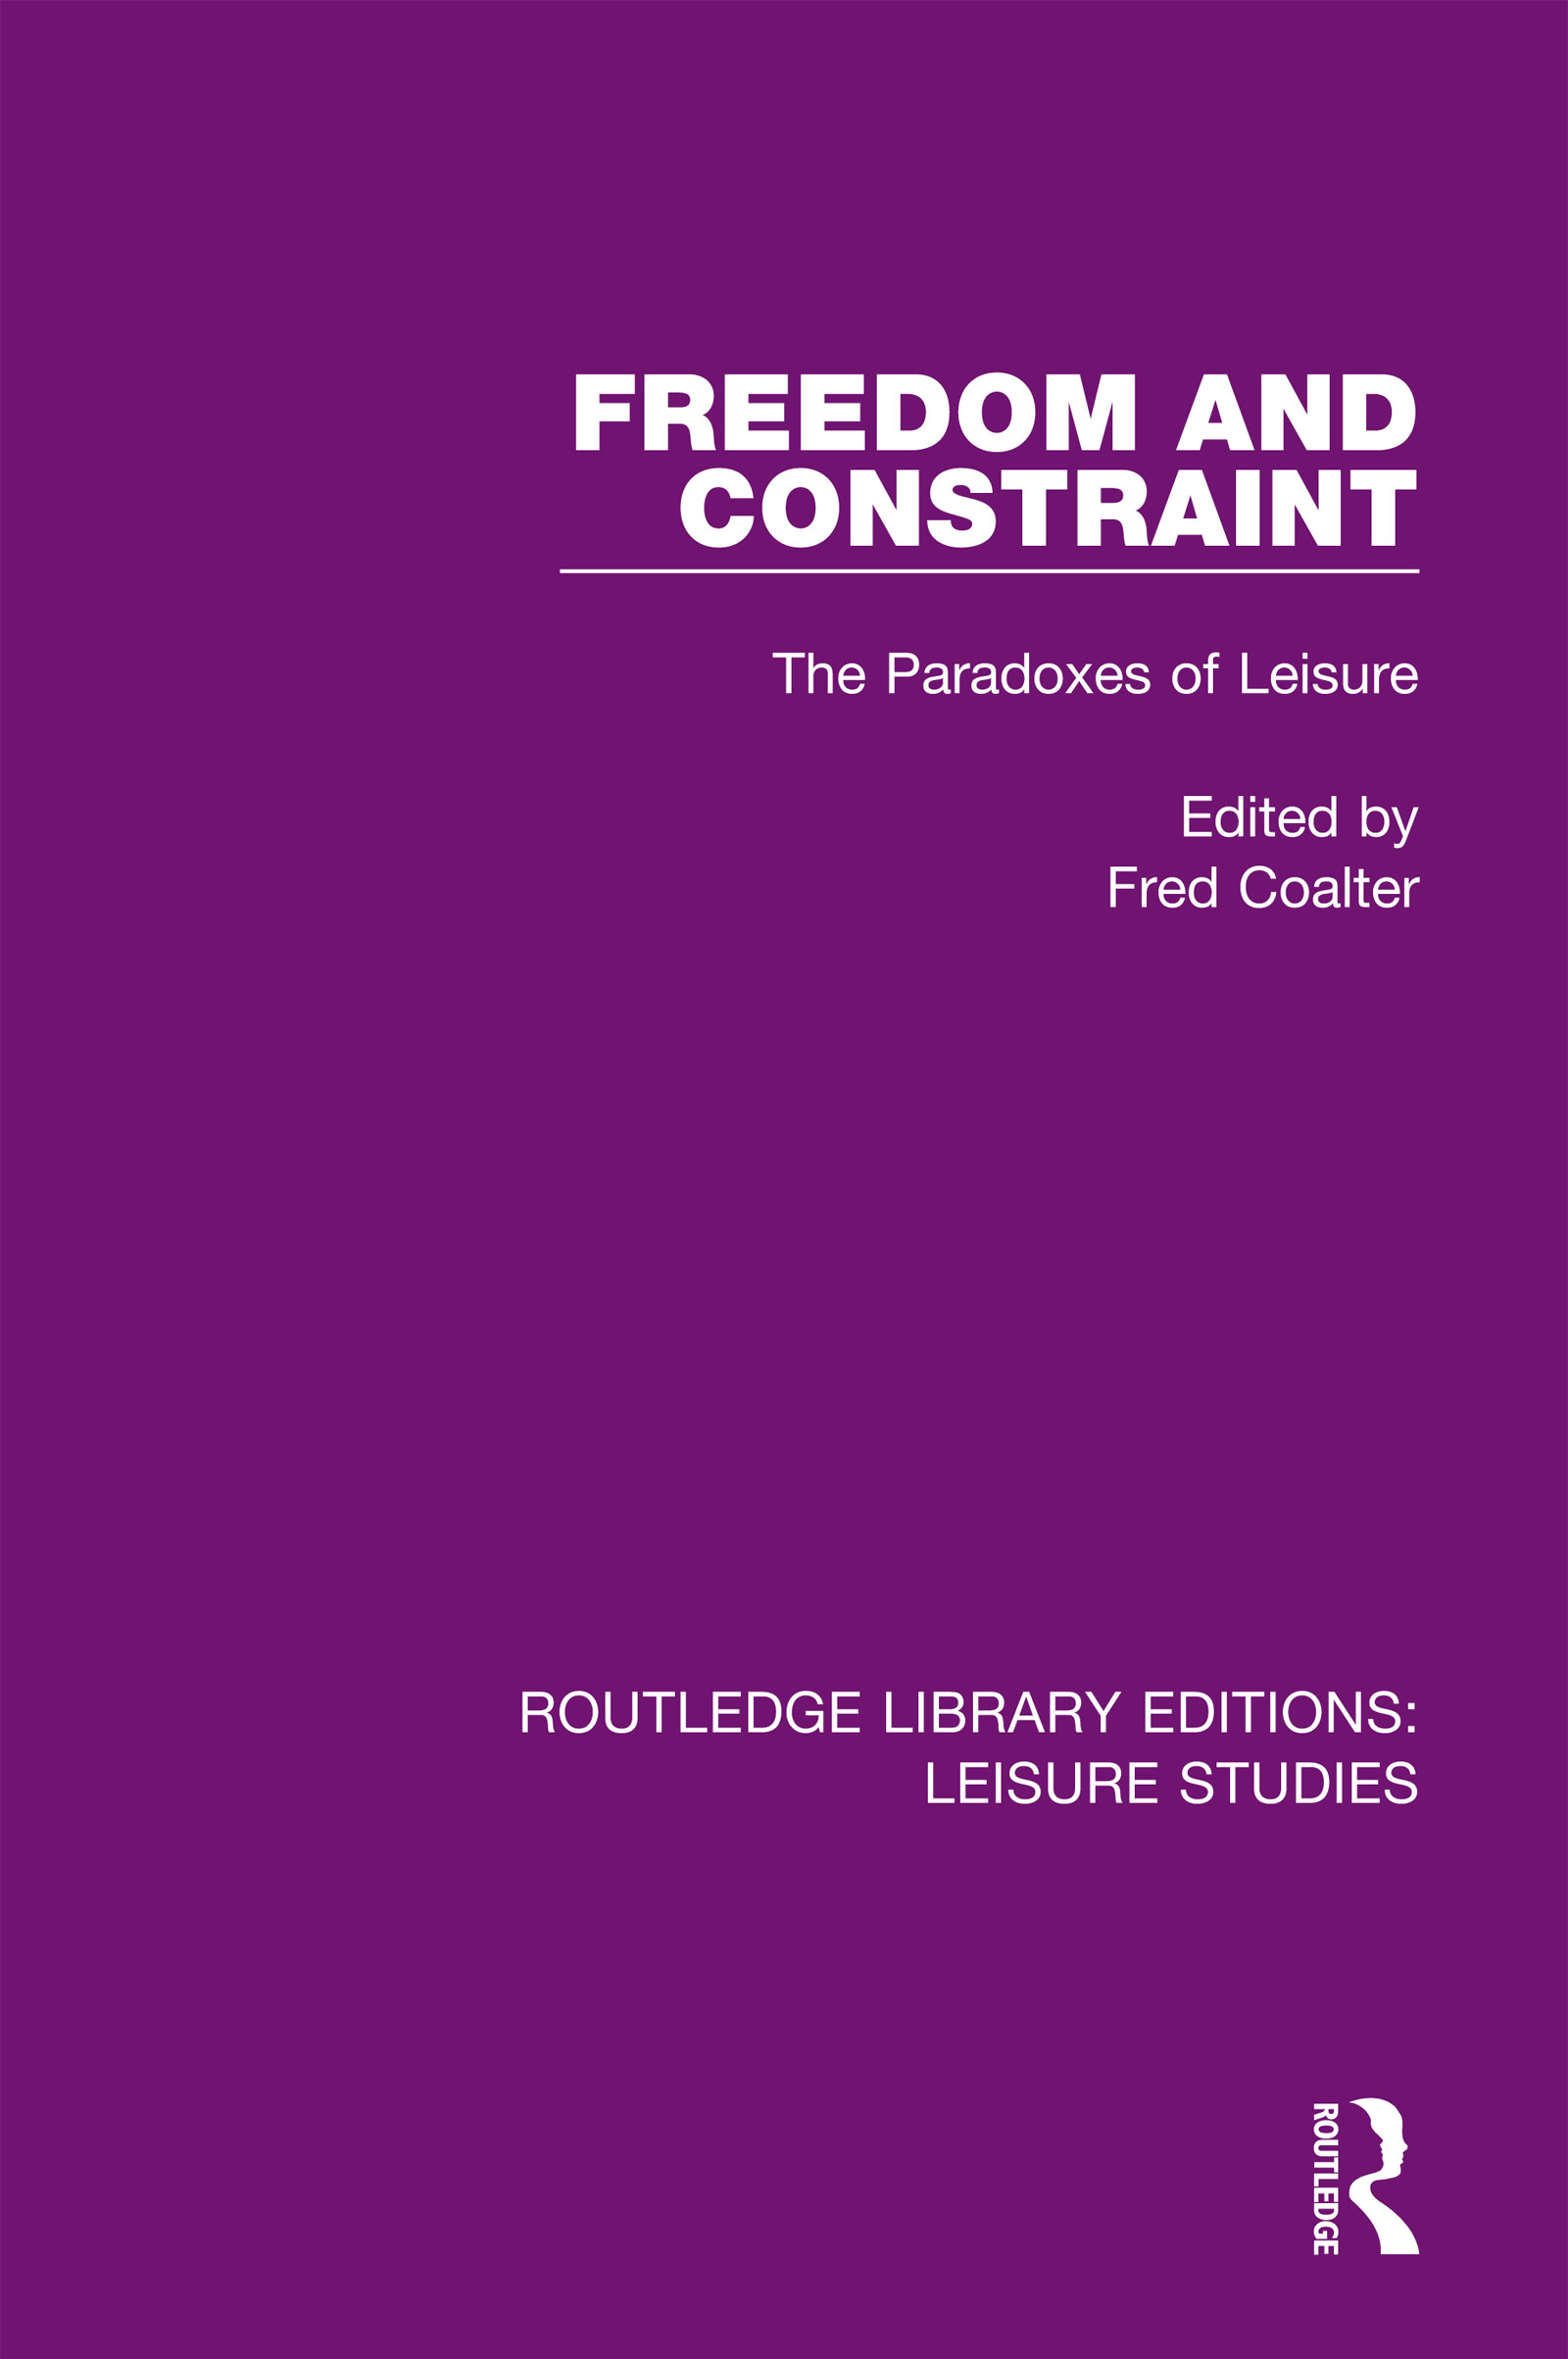 Freedom and Constraint